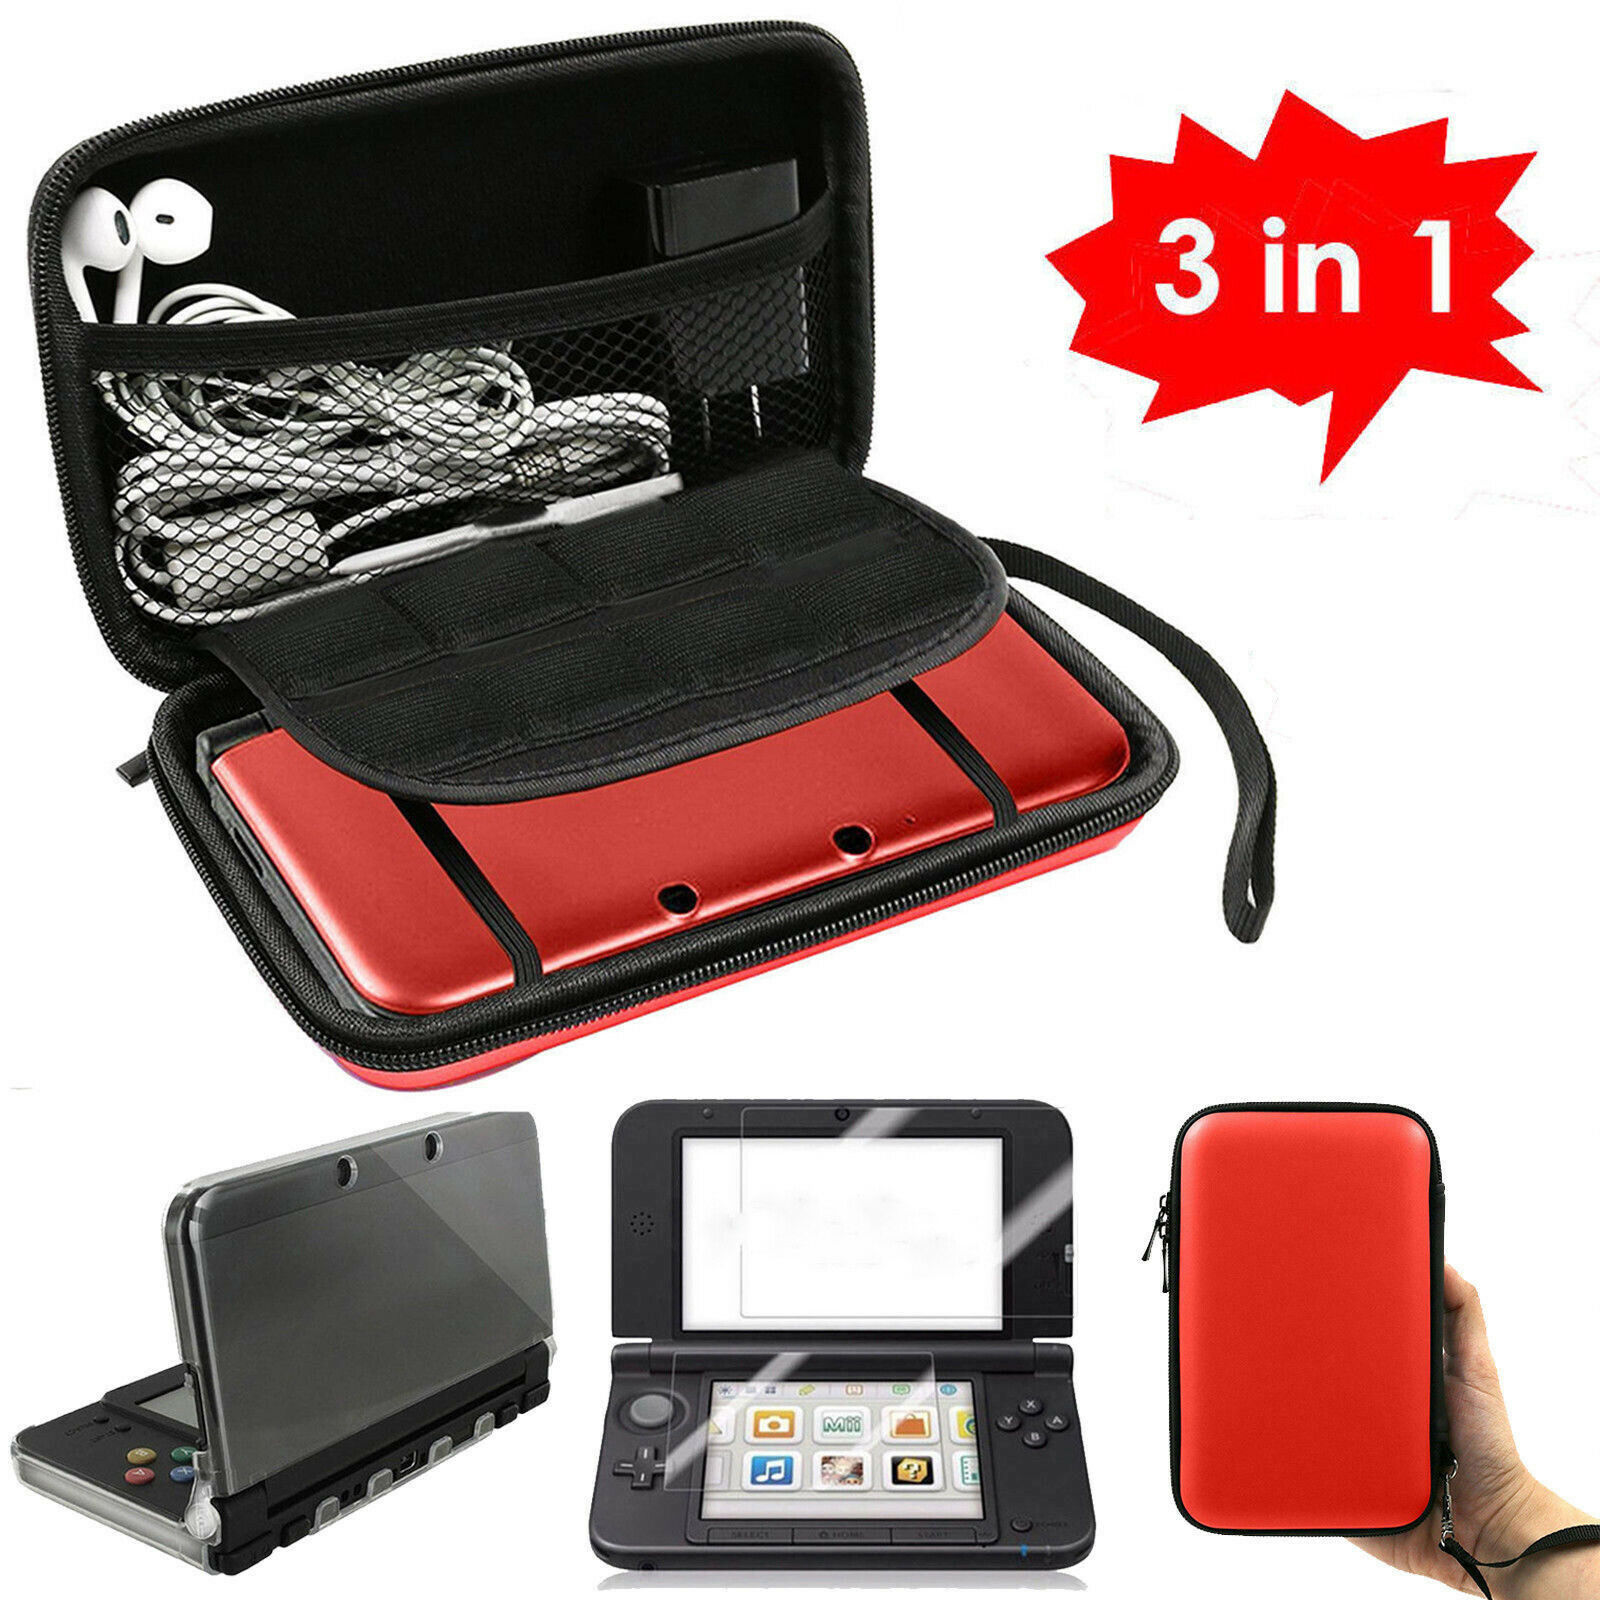 Primary image for 3 in 1 Carrying Bag+Clear Case Cover+Screen Protector for New Nintendo 3DS XL LL